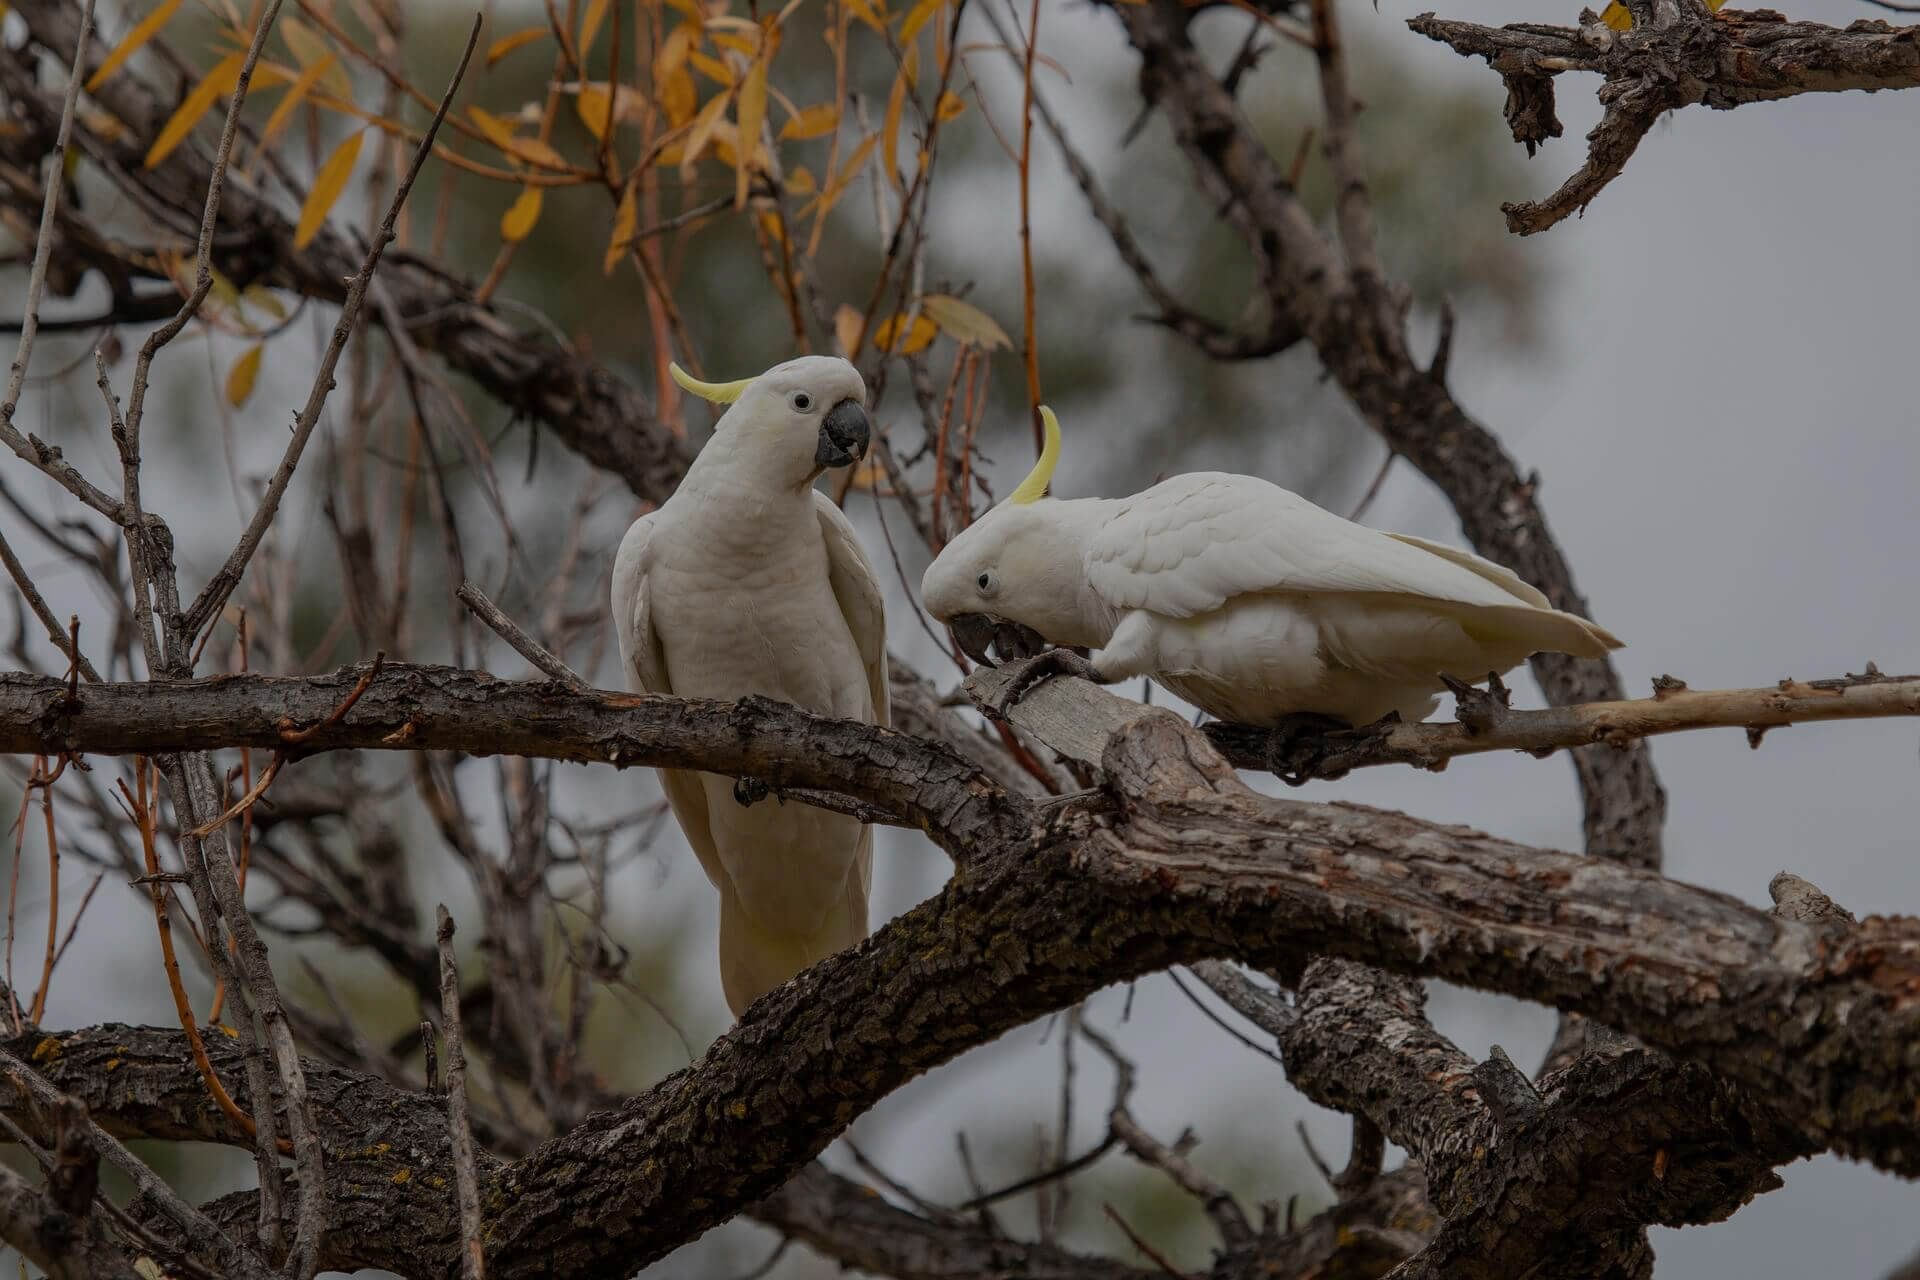 A pair of cockatoos